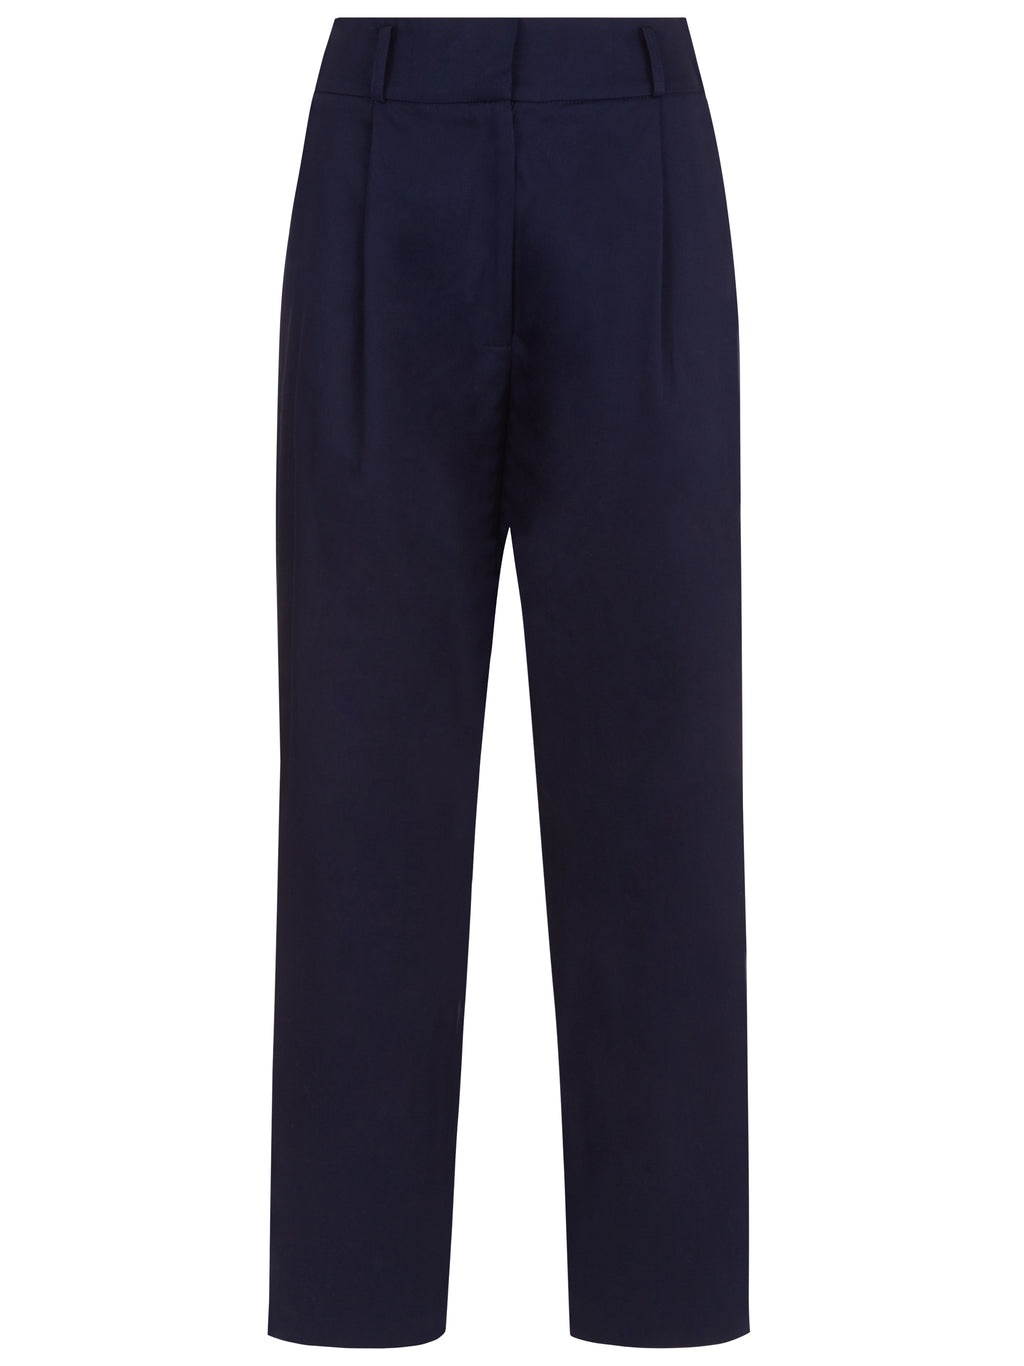 The Ford Trouser - Indigo Blue